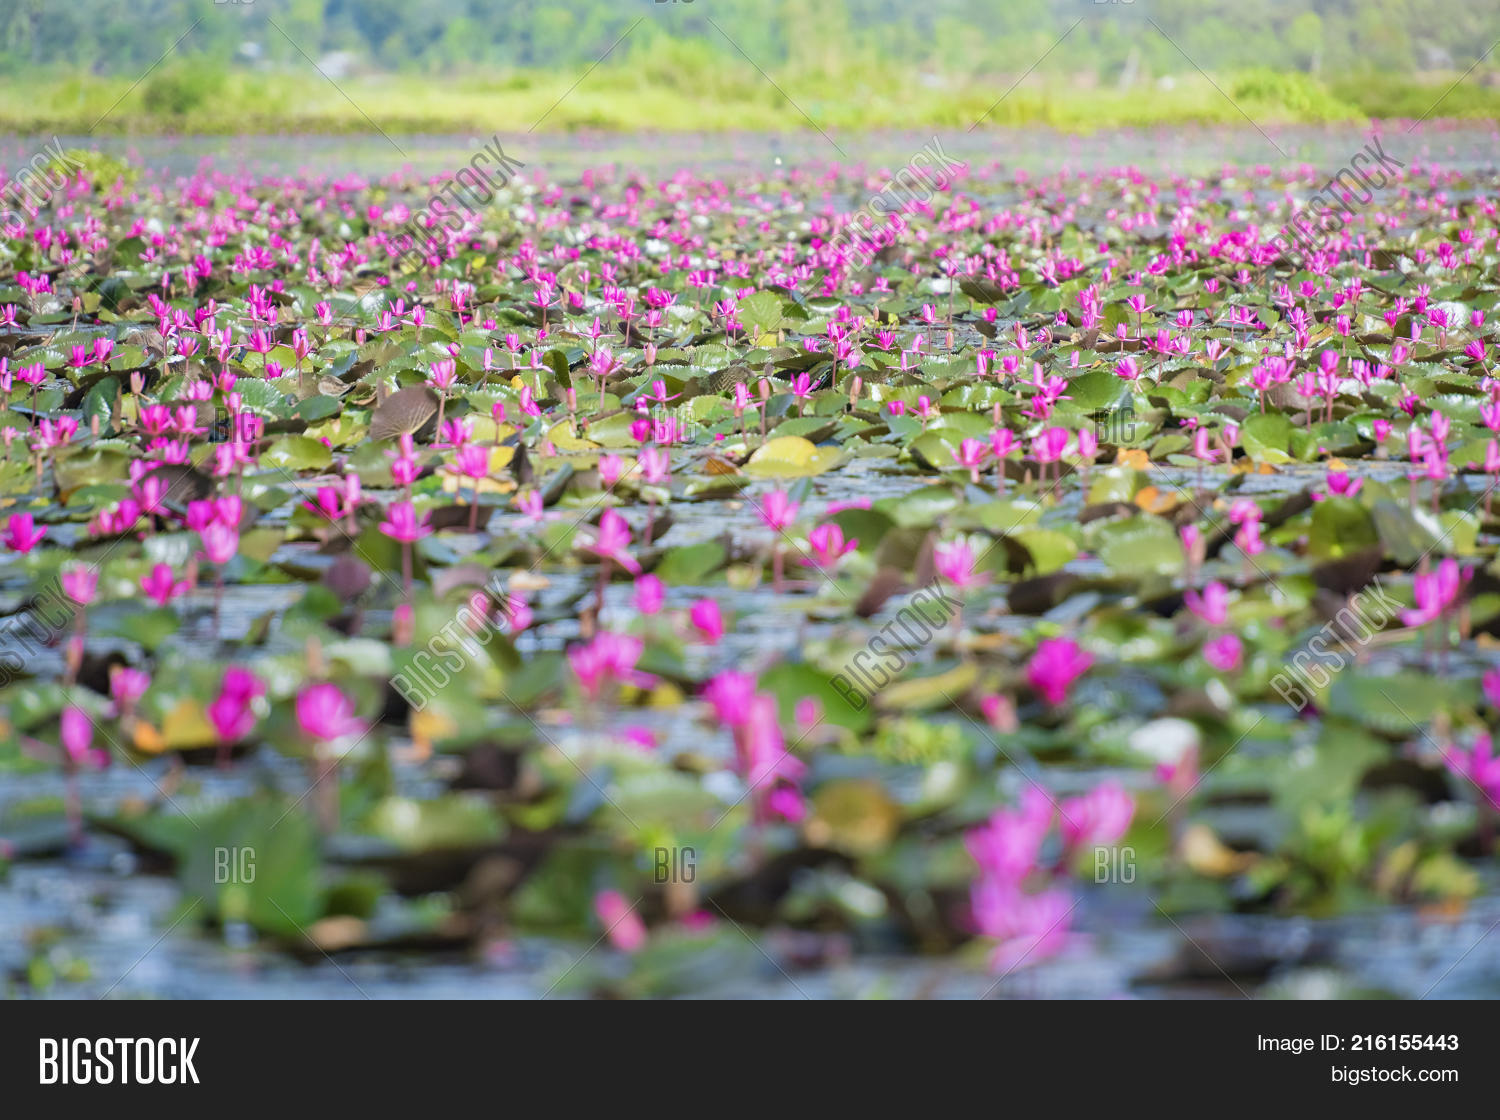 Picture Beautiful Image Photo Free Trial Bigstock